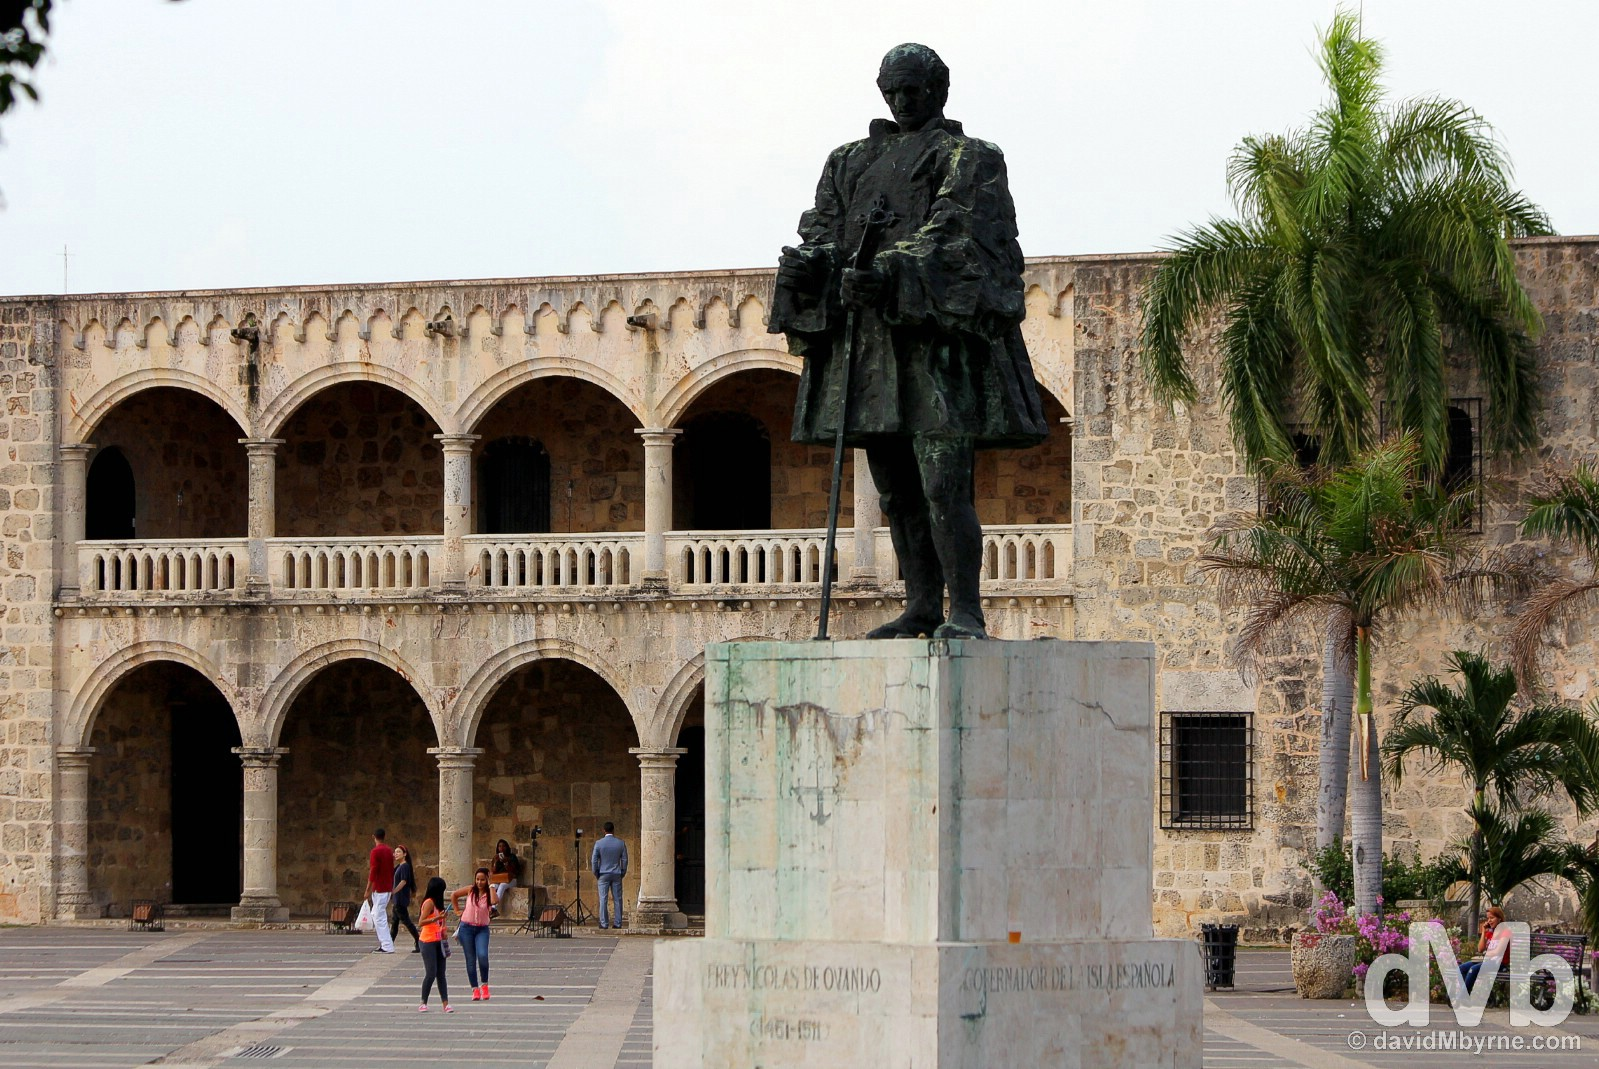 Plaza Espana, Santo Domingo, Dominican Republic.May 24, 2015.